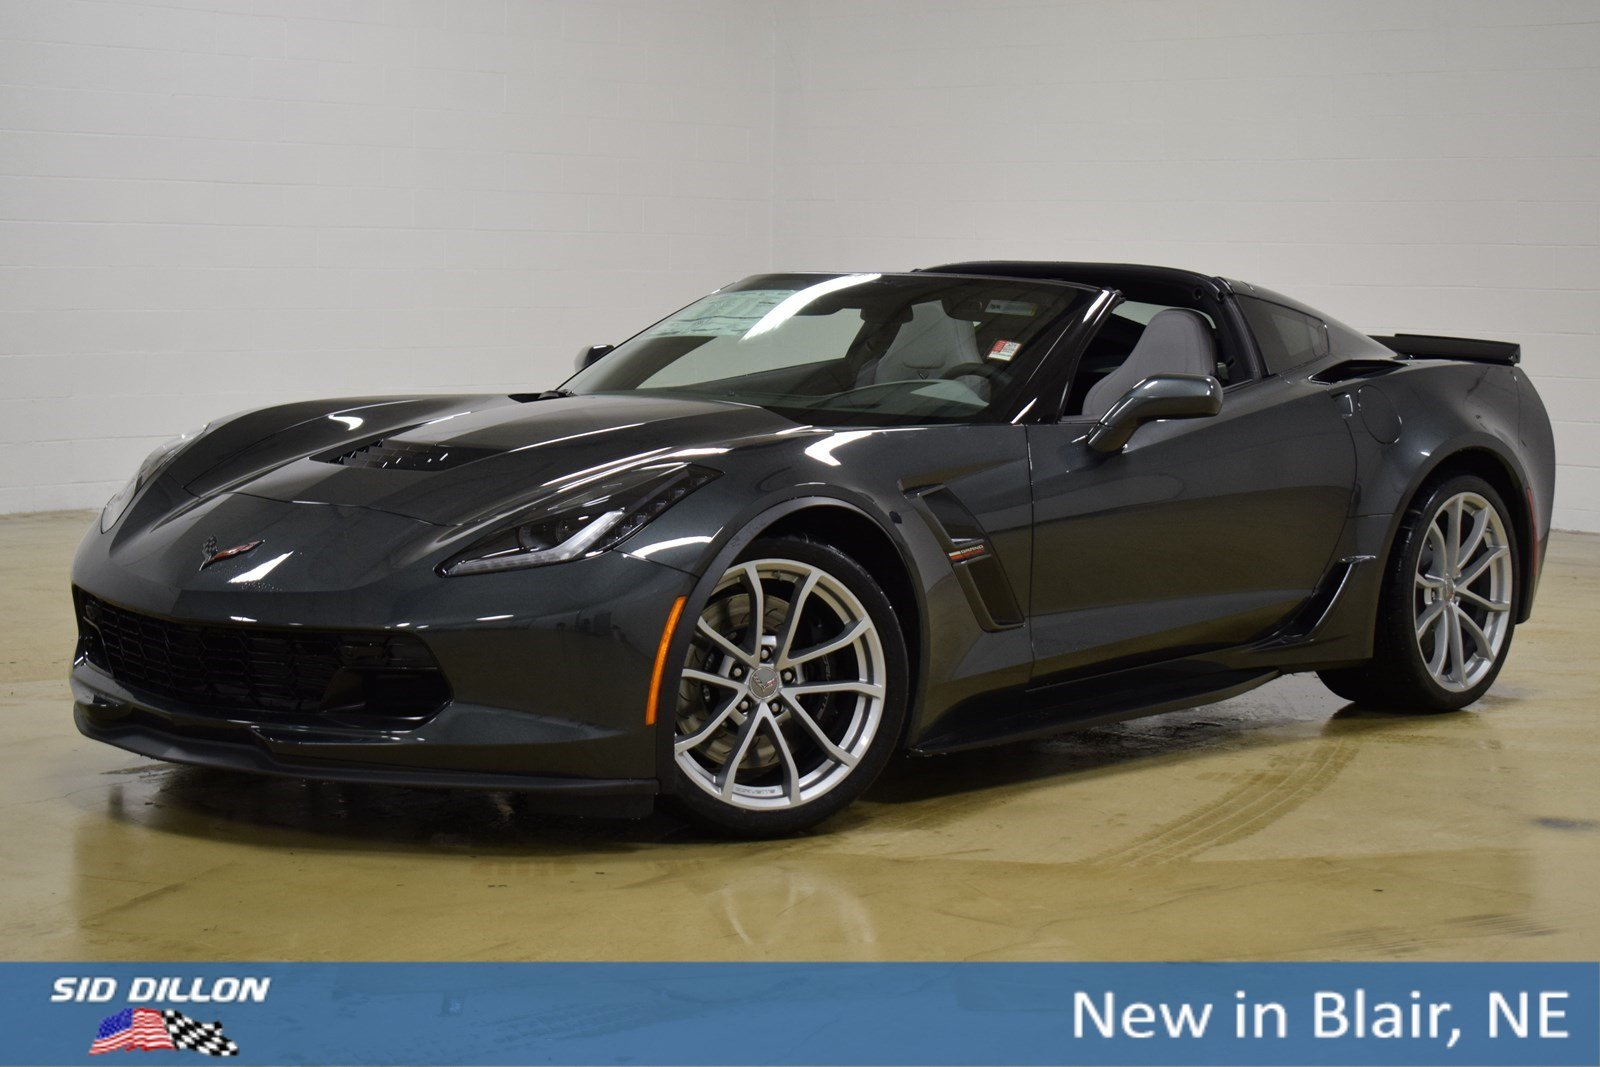 747702feea864101608ca41fedc0be4c - 2011 Chevrolet Corvette Grand Sport Coupe 2lt At